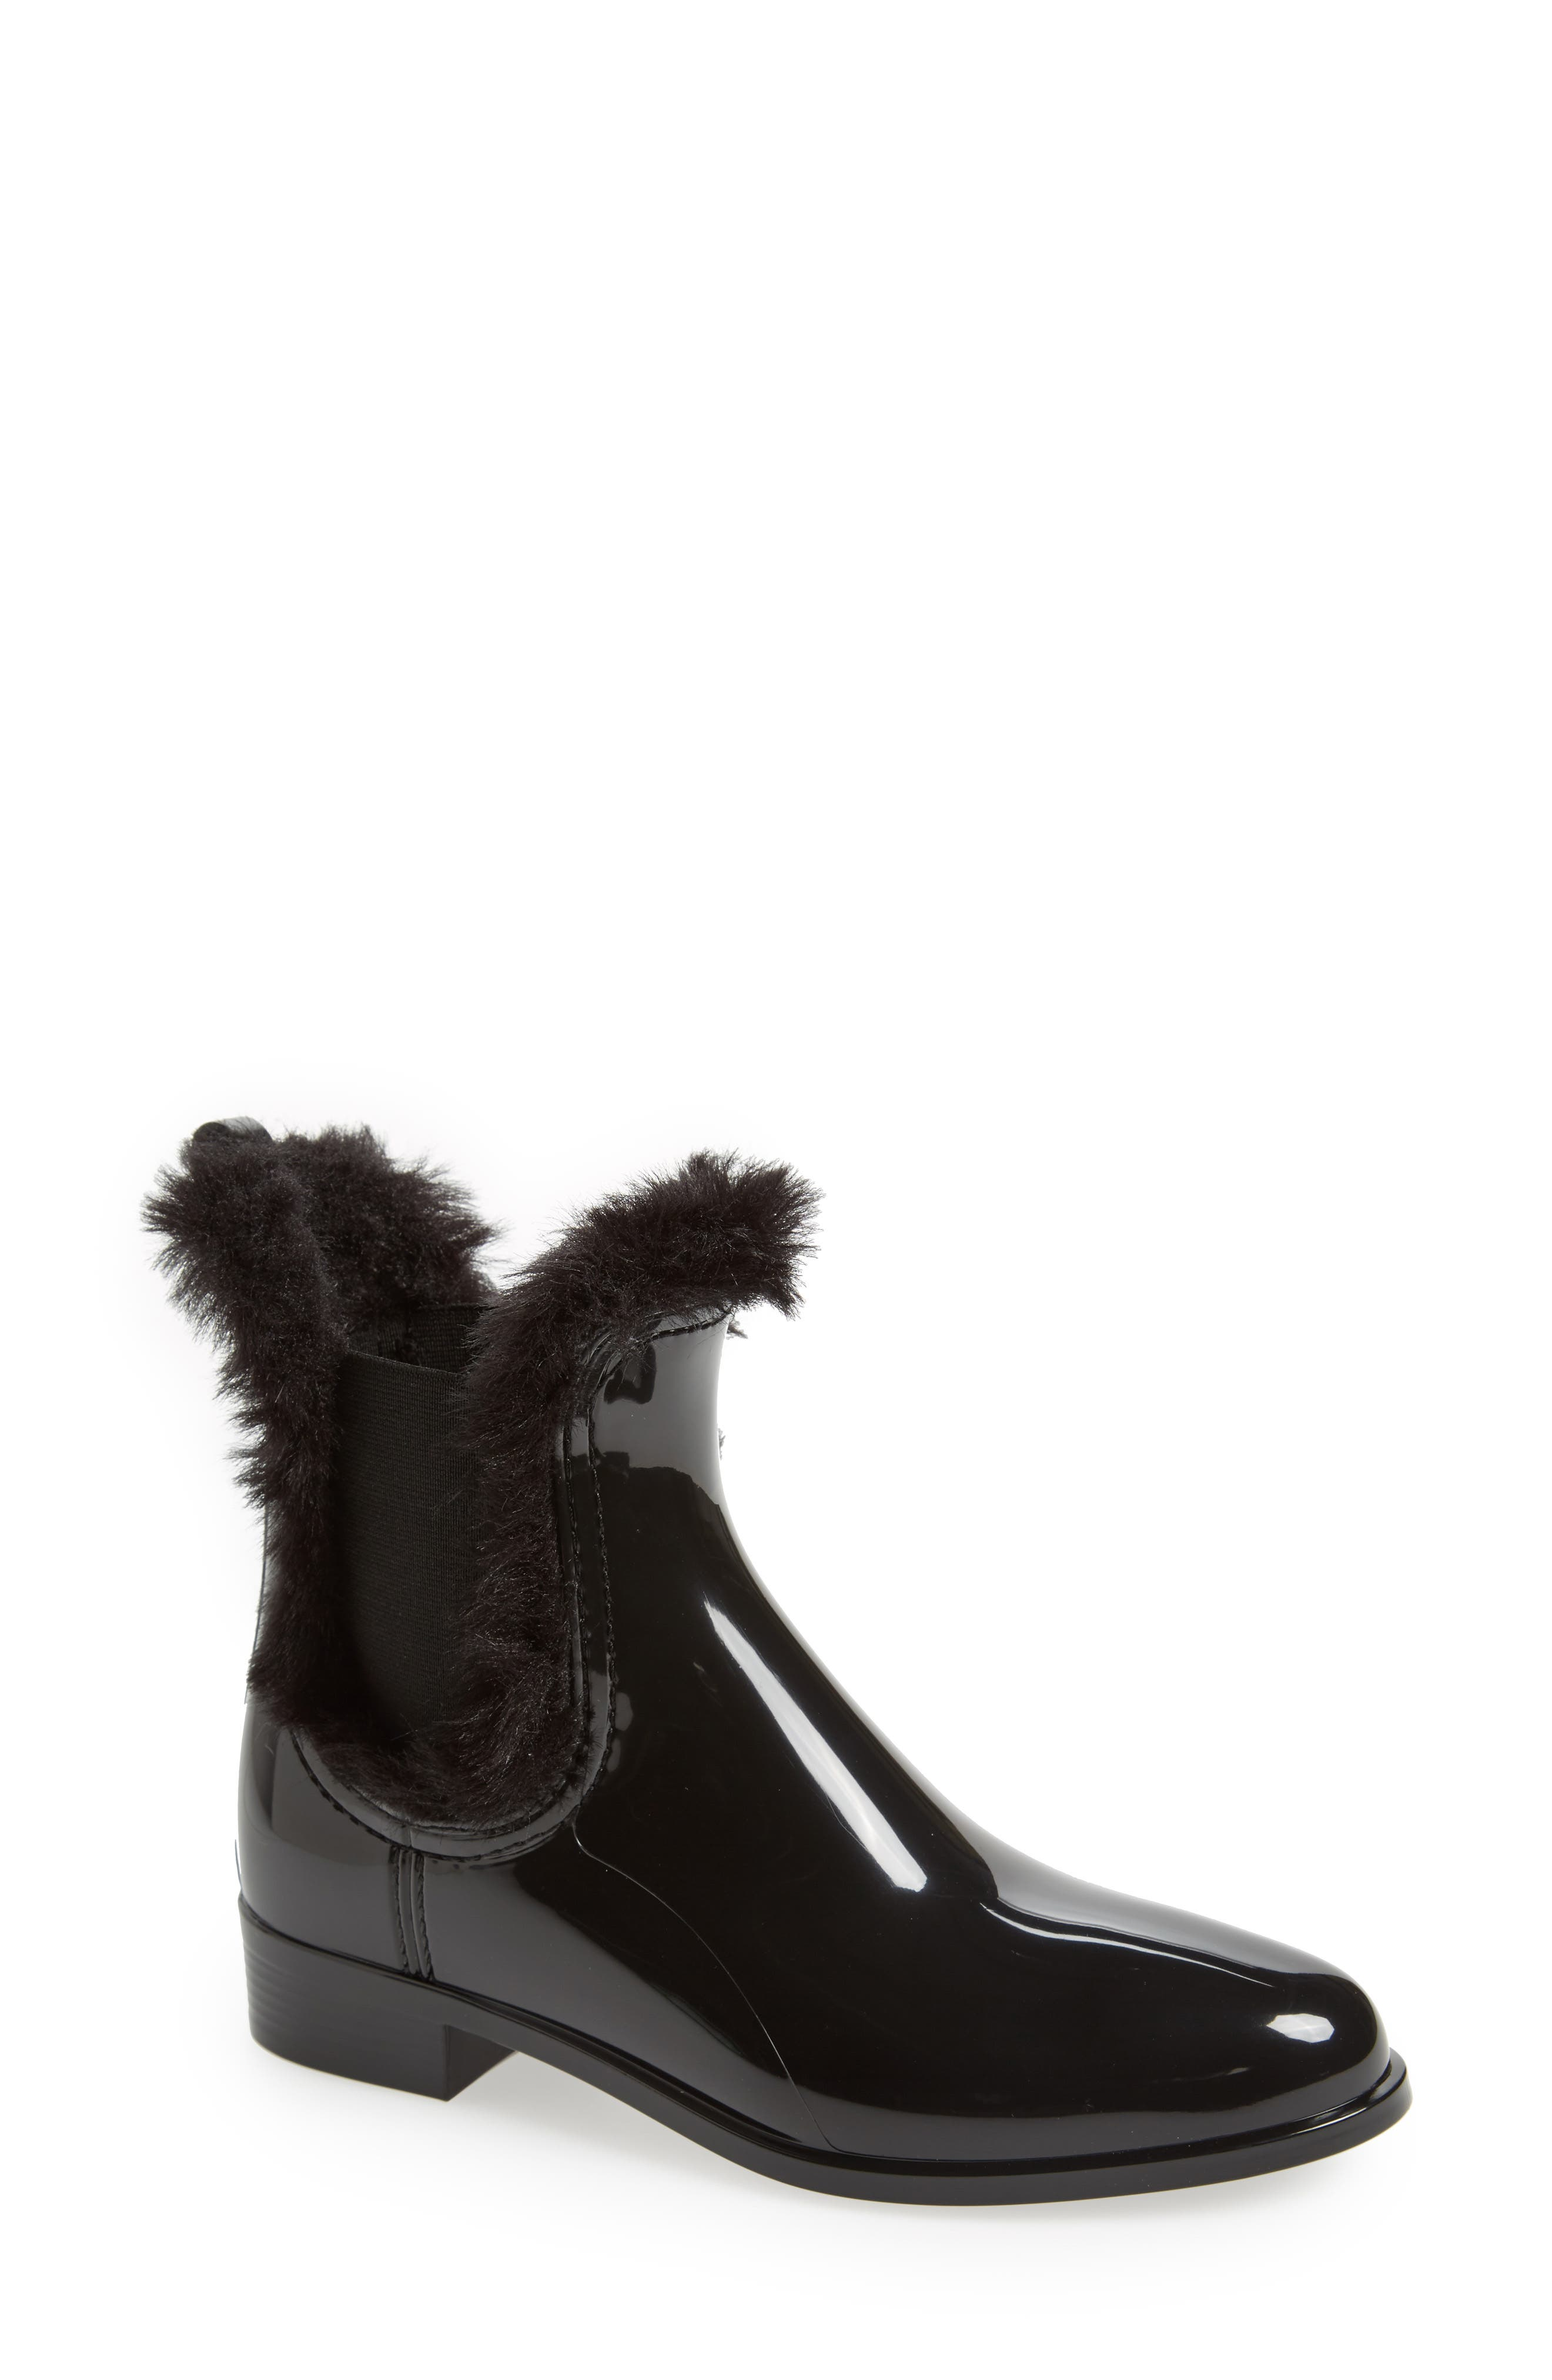 Aisha Waterproof Chelsea Boot with Faux Fur Lining,                         Main,                         color, BLACK GLOSS